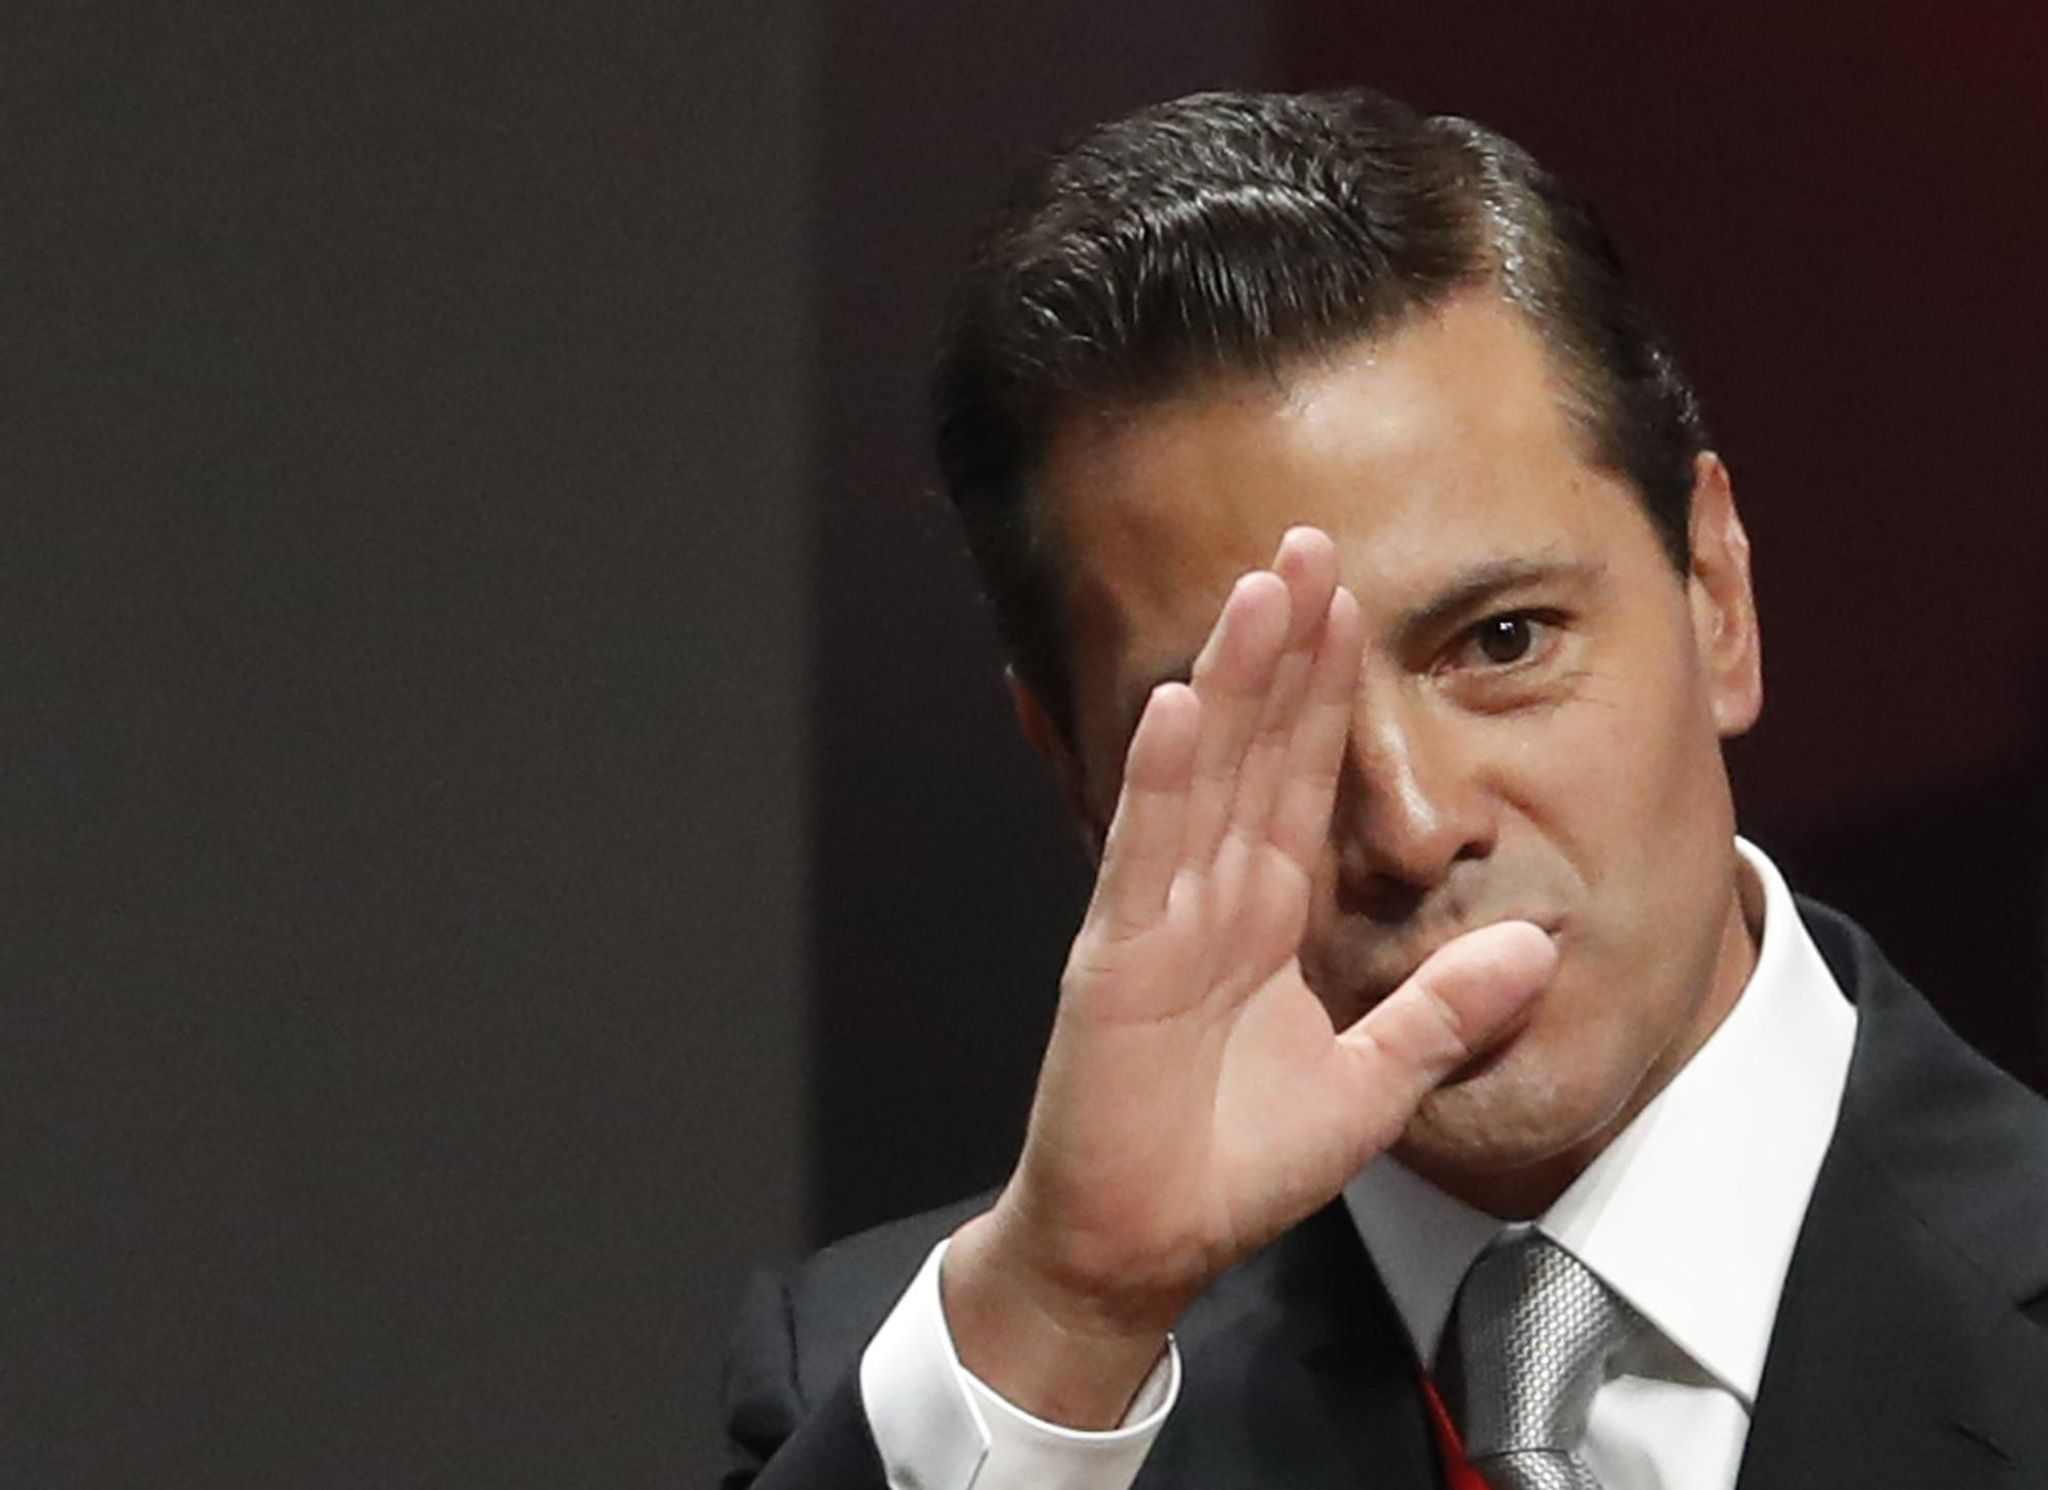 Mexican government shields officials from corruption probe - Washington Times